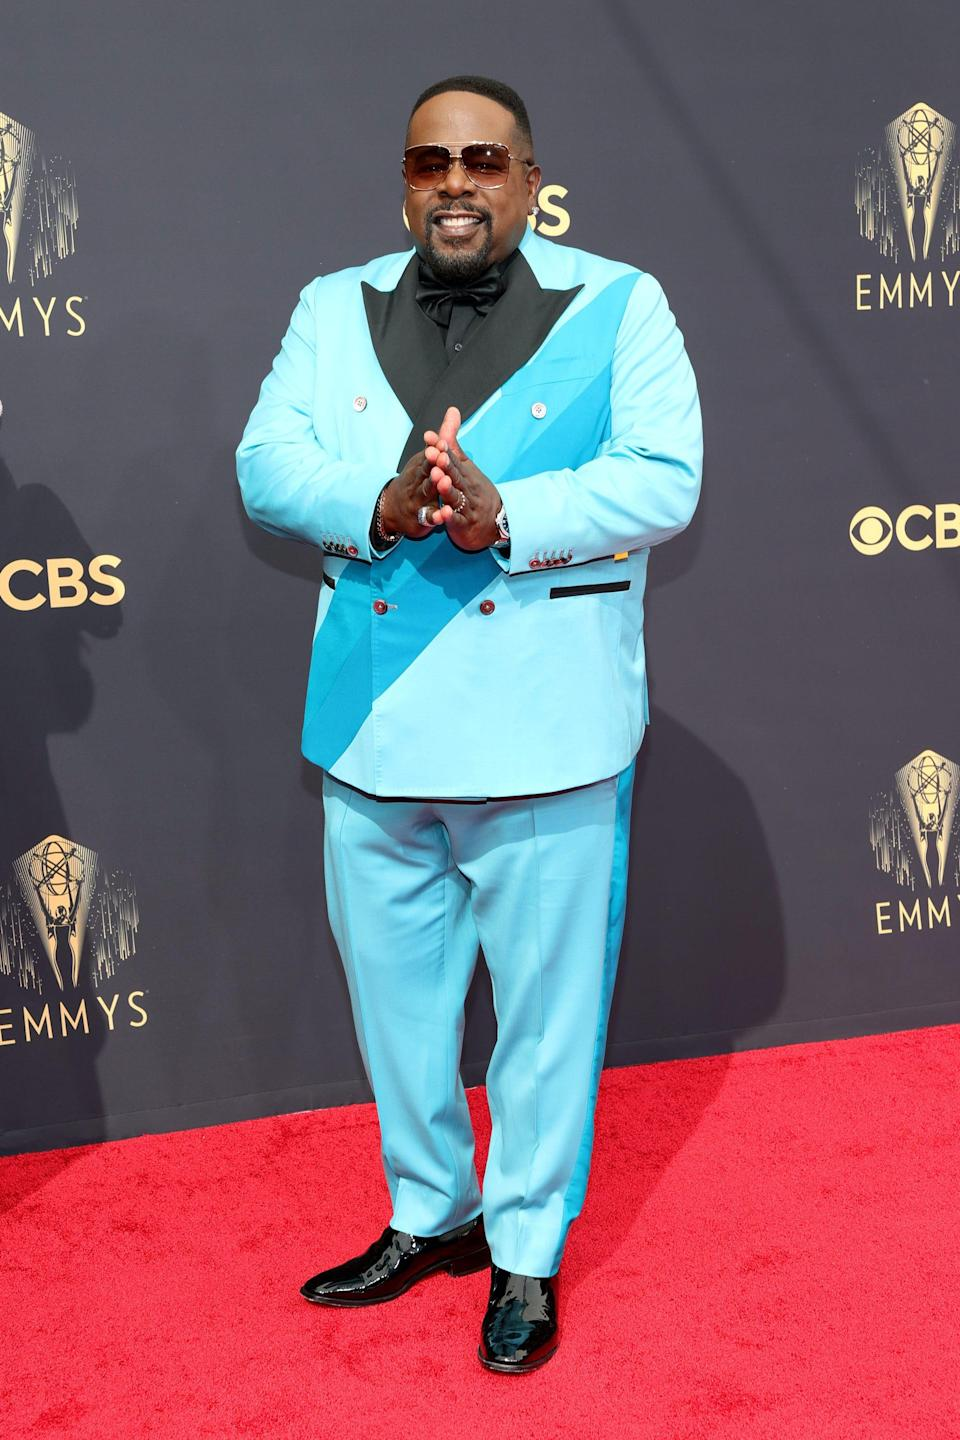 Cedric The Entertainer wears a blue suit on the Emmys red carpet.